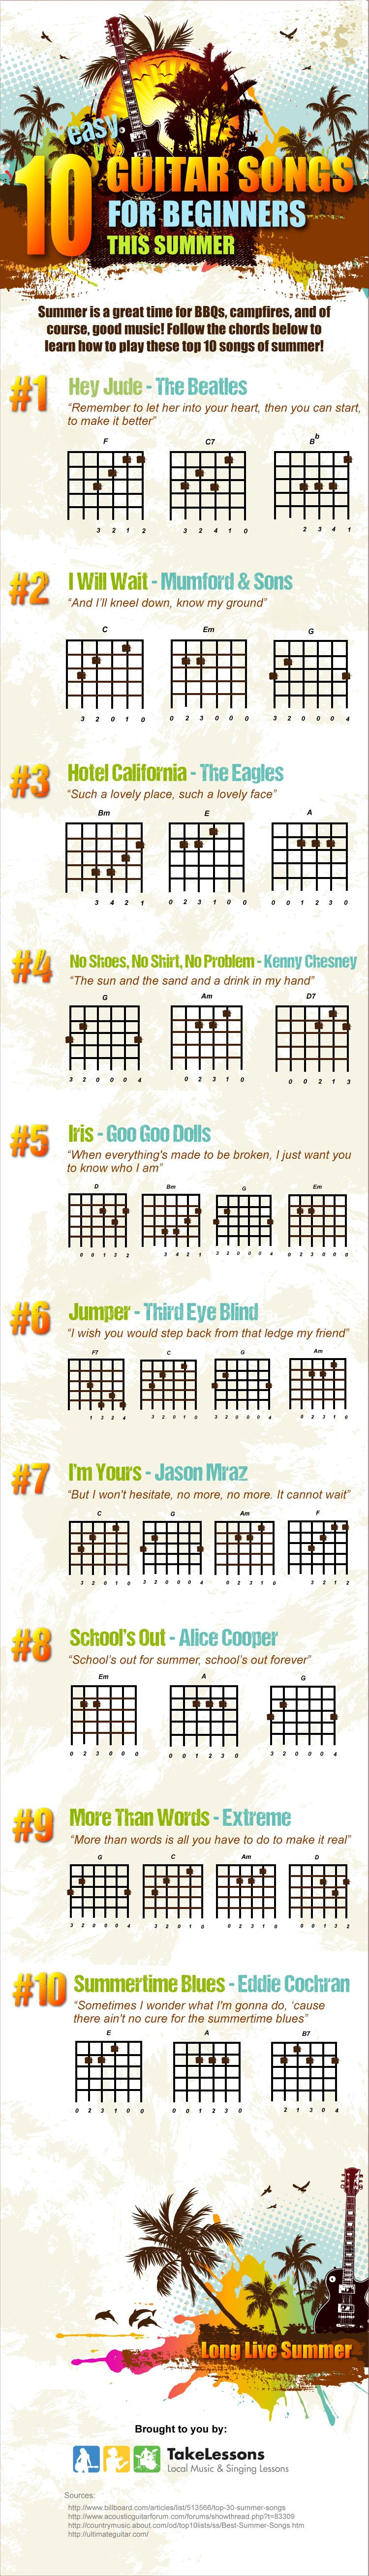 Learn Songs Today with Online Guitar Lessons & Guitar Tabs